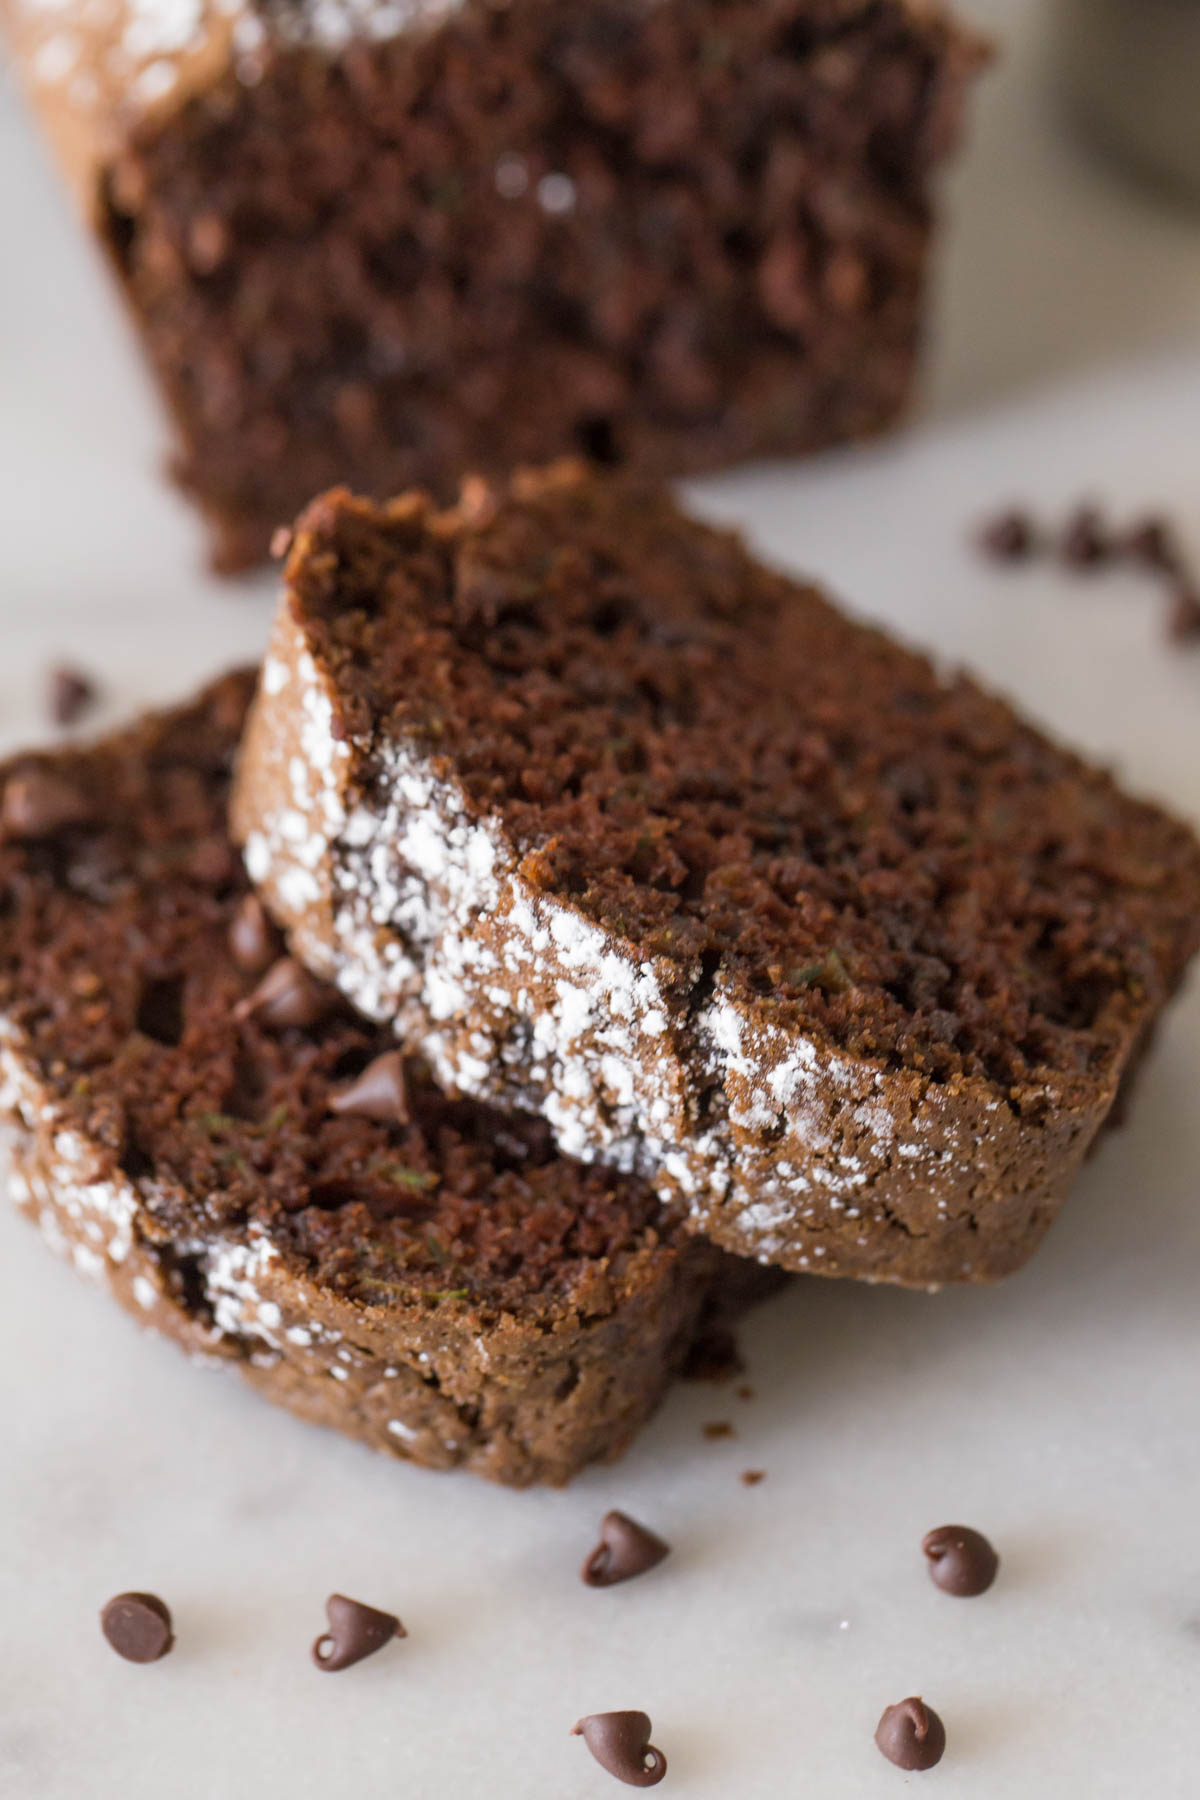 Close up view of slices of Chocolate Zucchini Bread on a marble background.